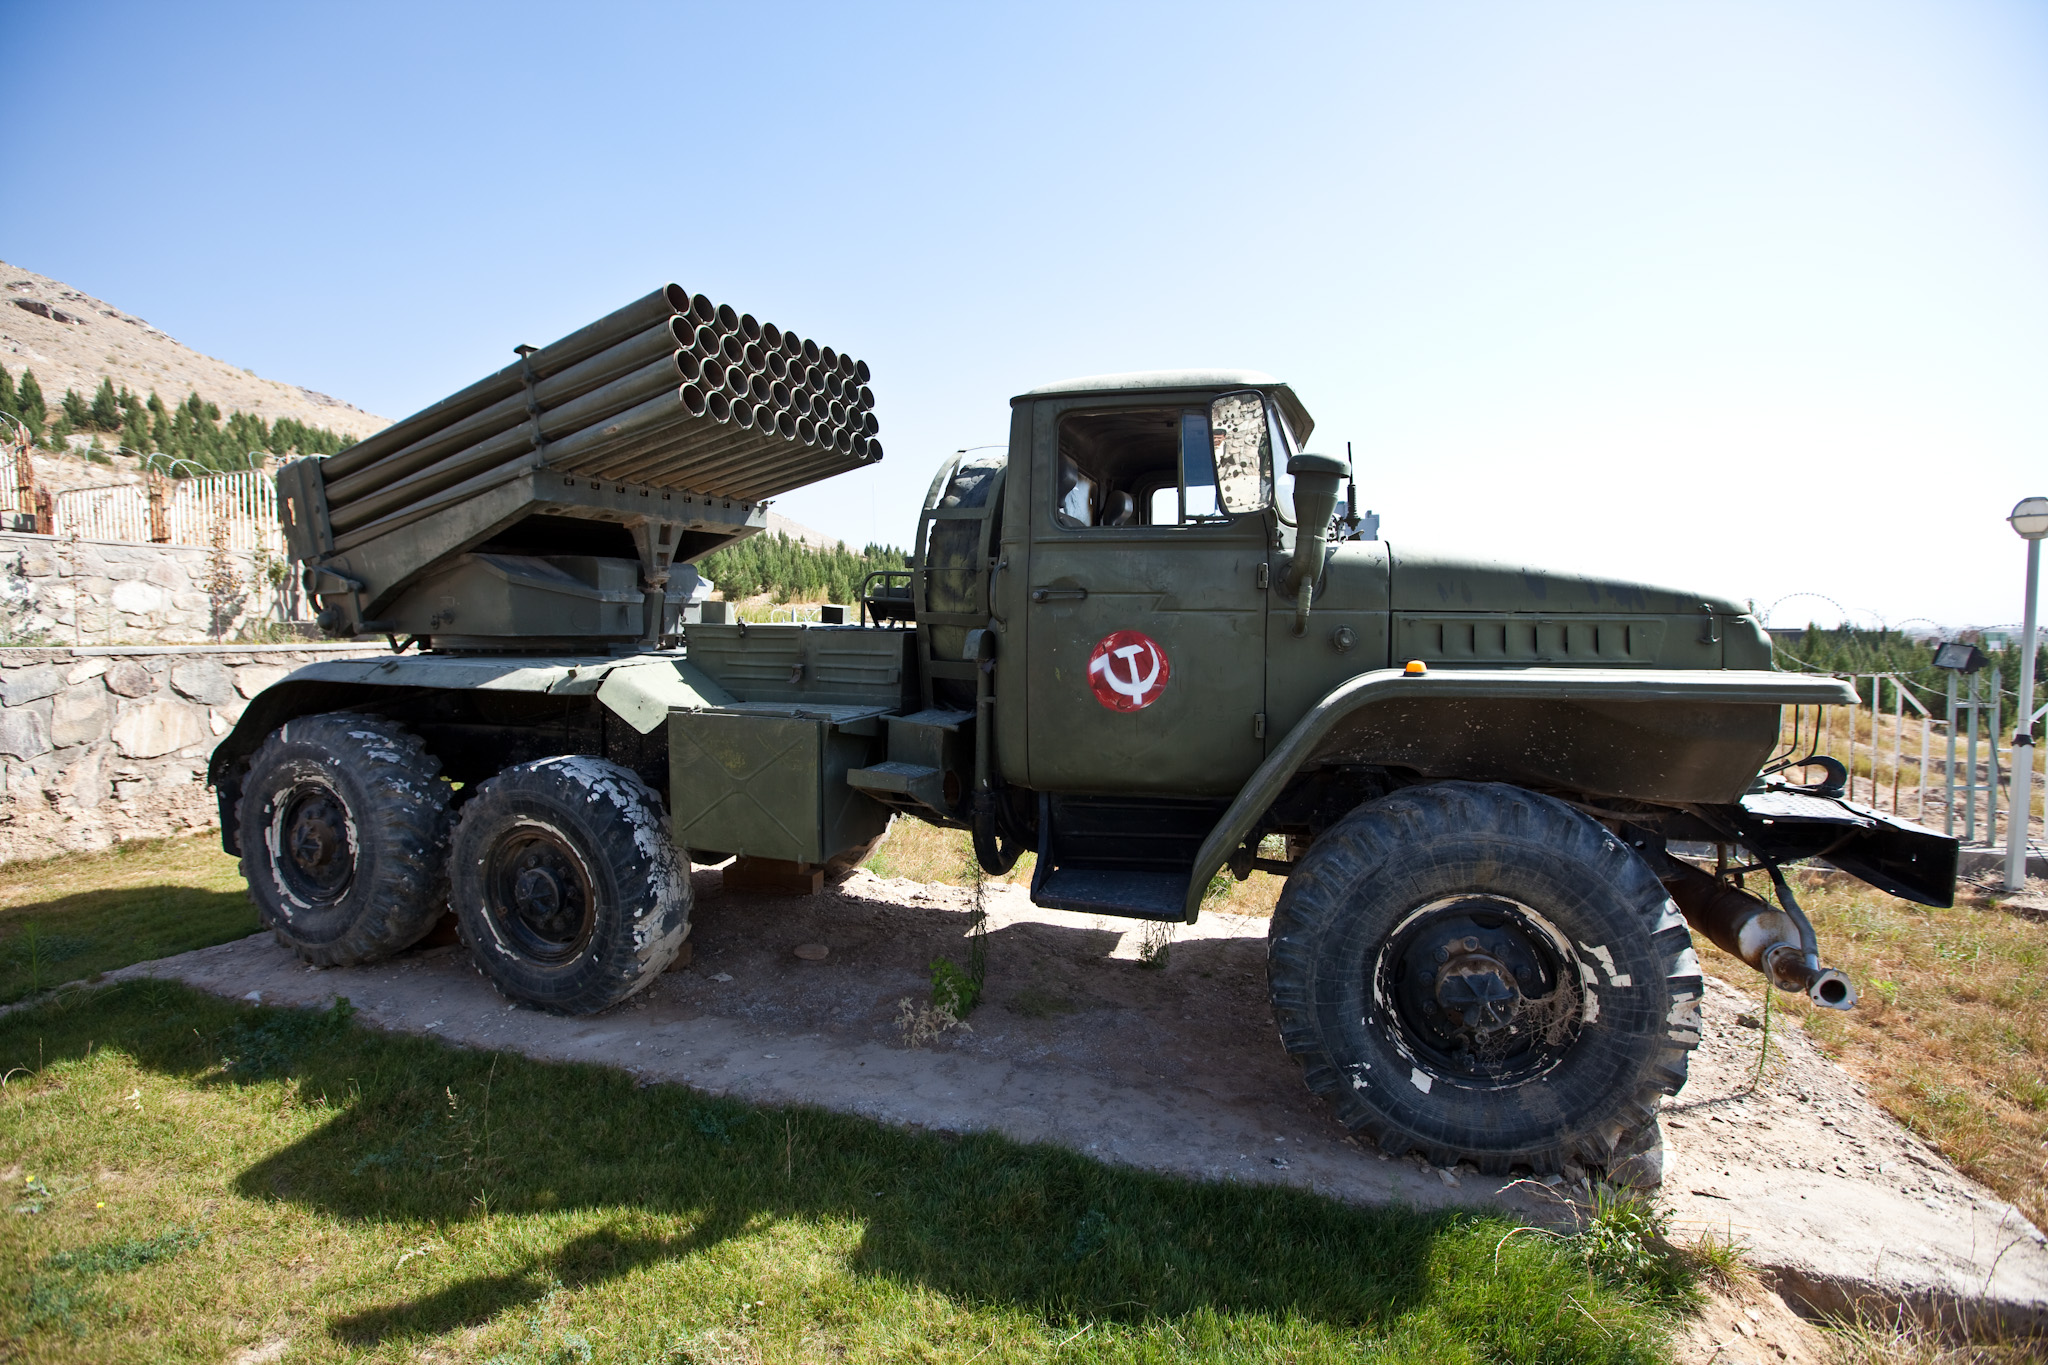 File Bm 21 Grad On Ural 375d Chassis In A Museum In Herat